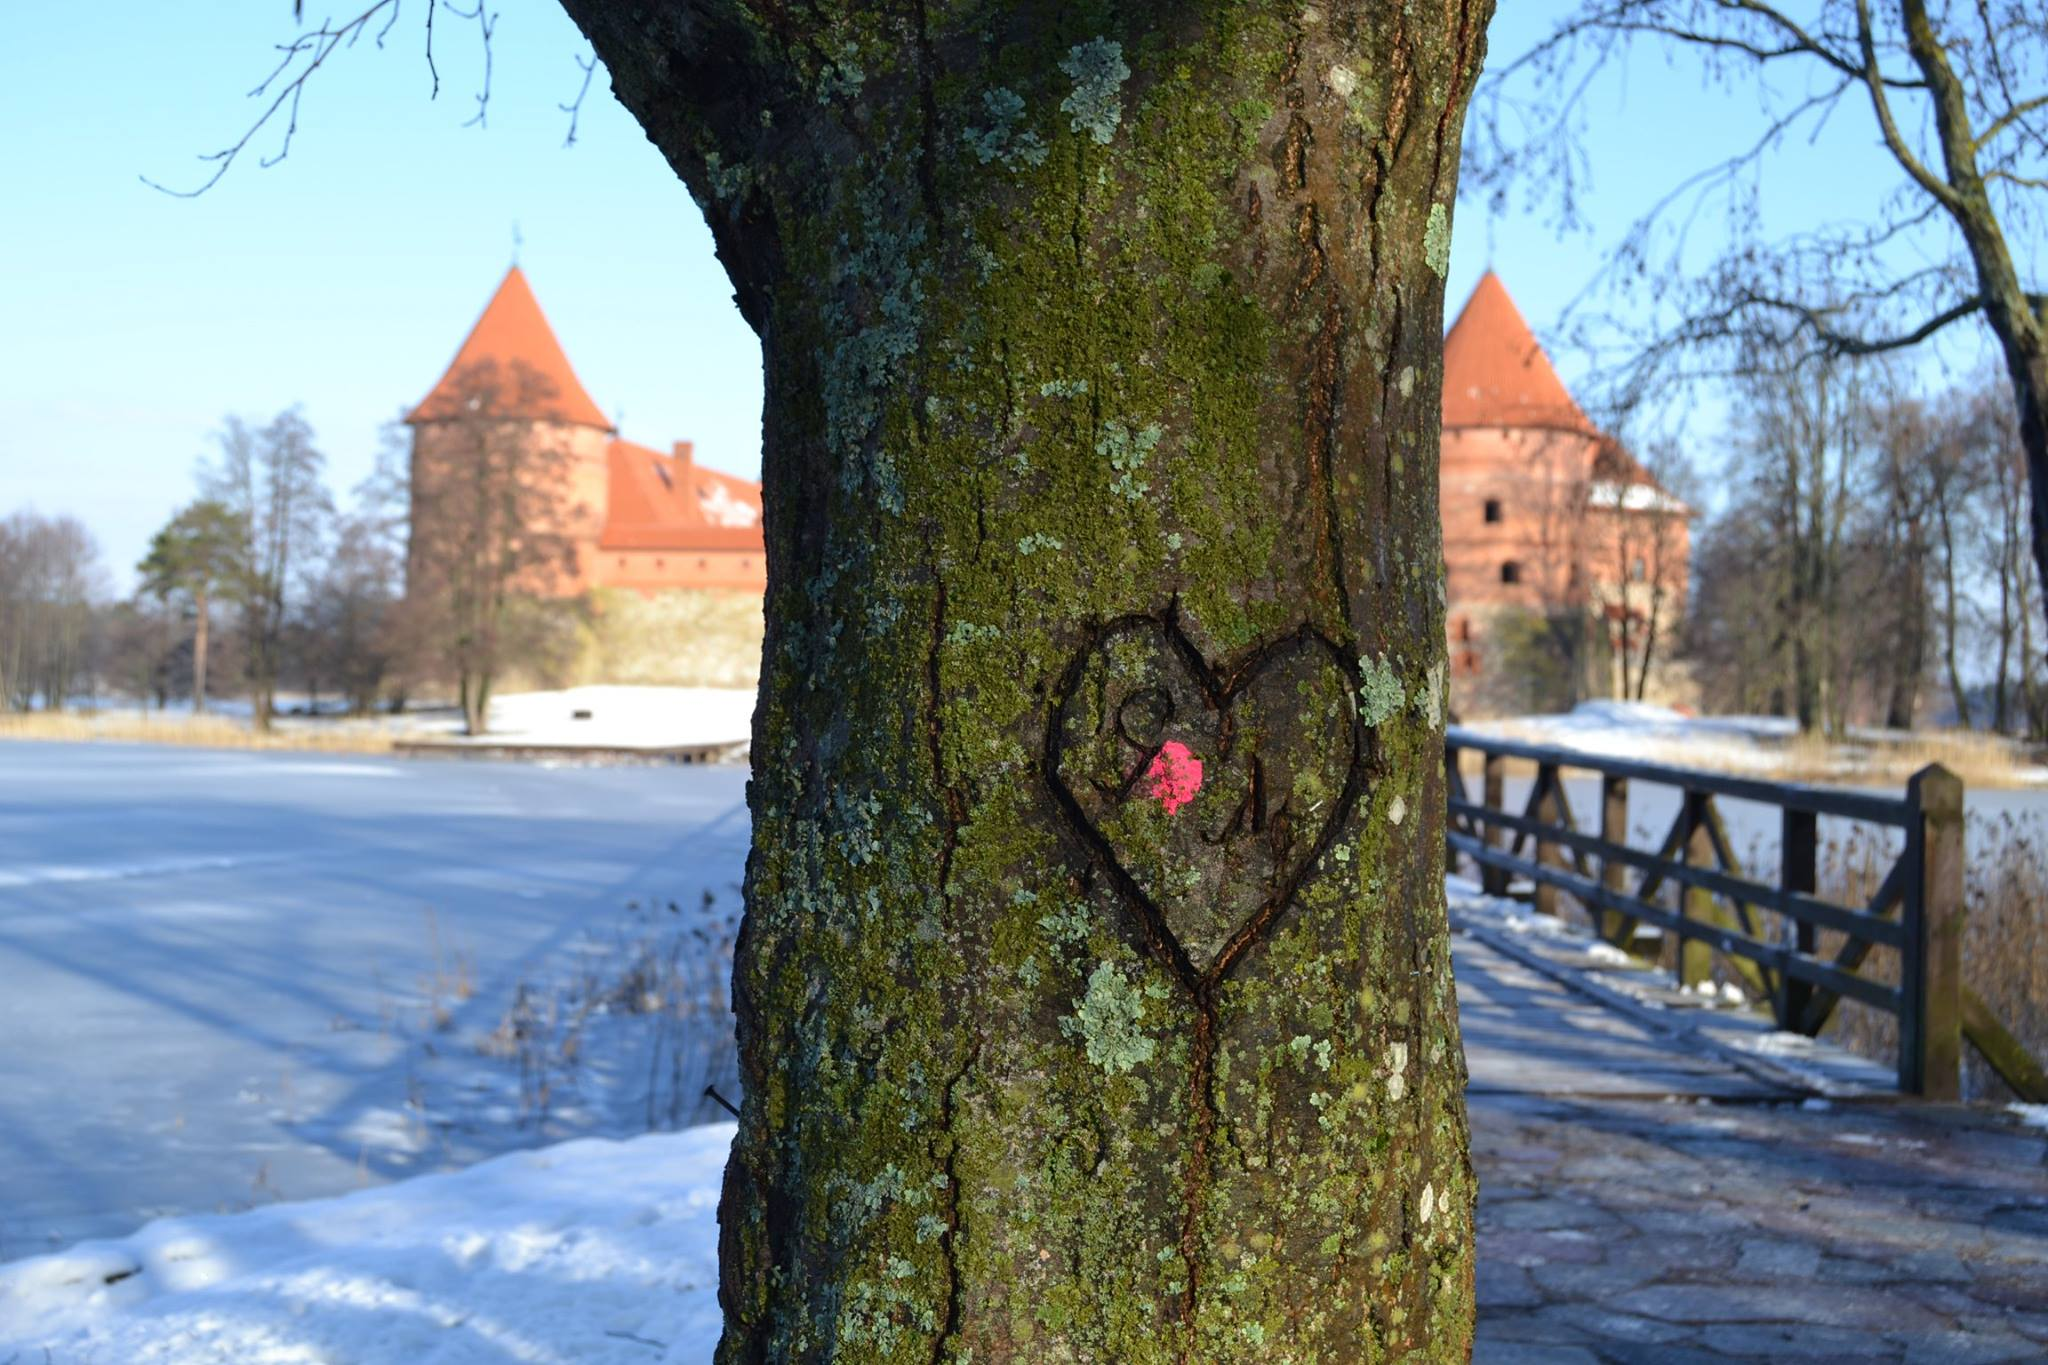 Lithuania Trakai Castle 02.2016